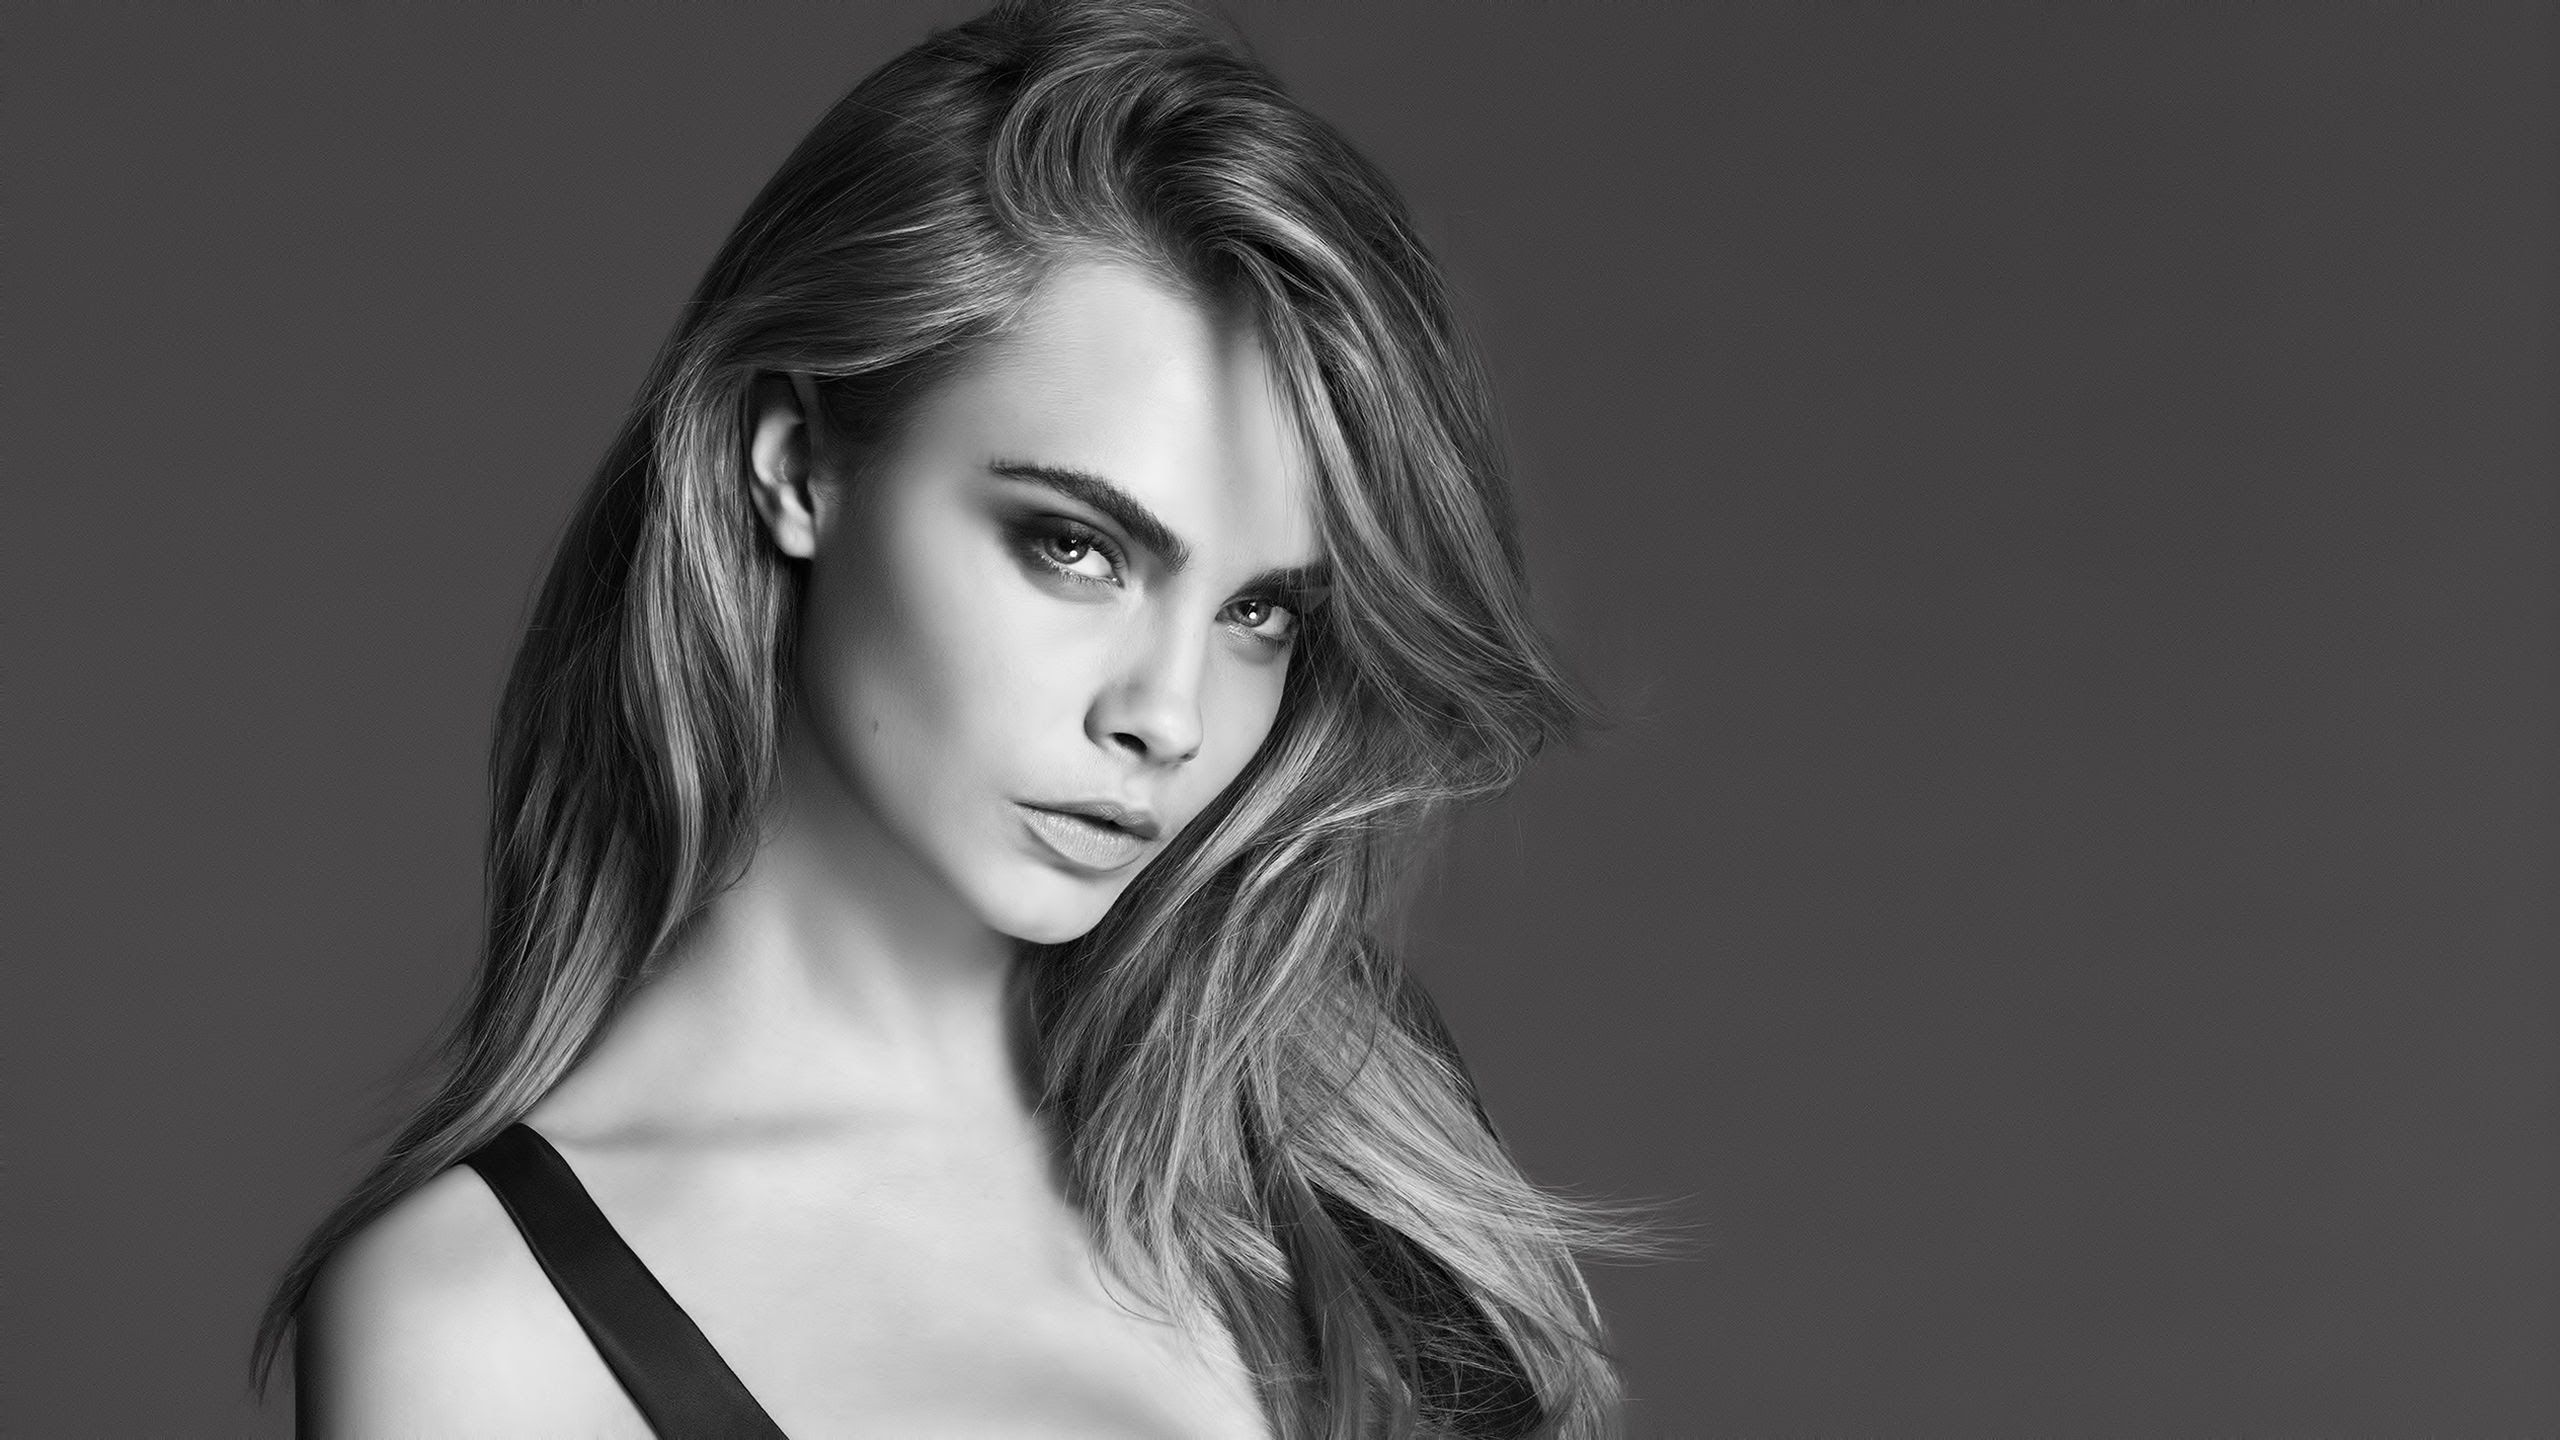 best images about girls on pinterest cara delevingne ariana